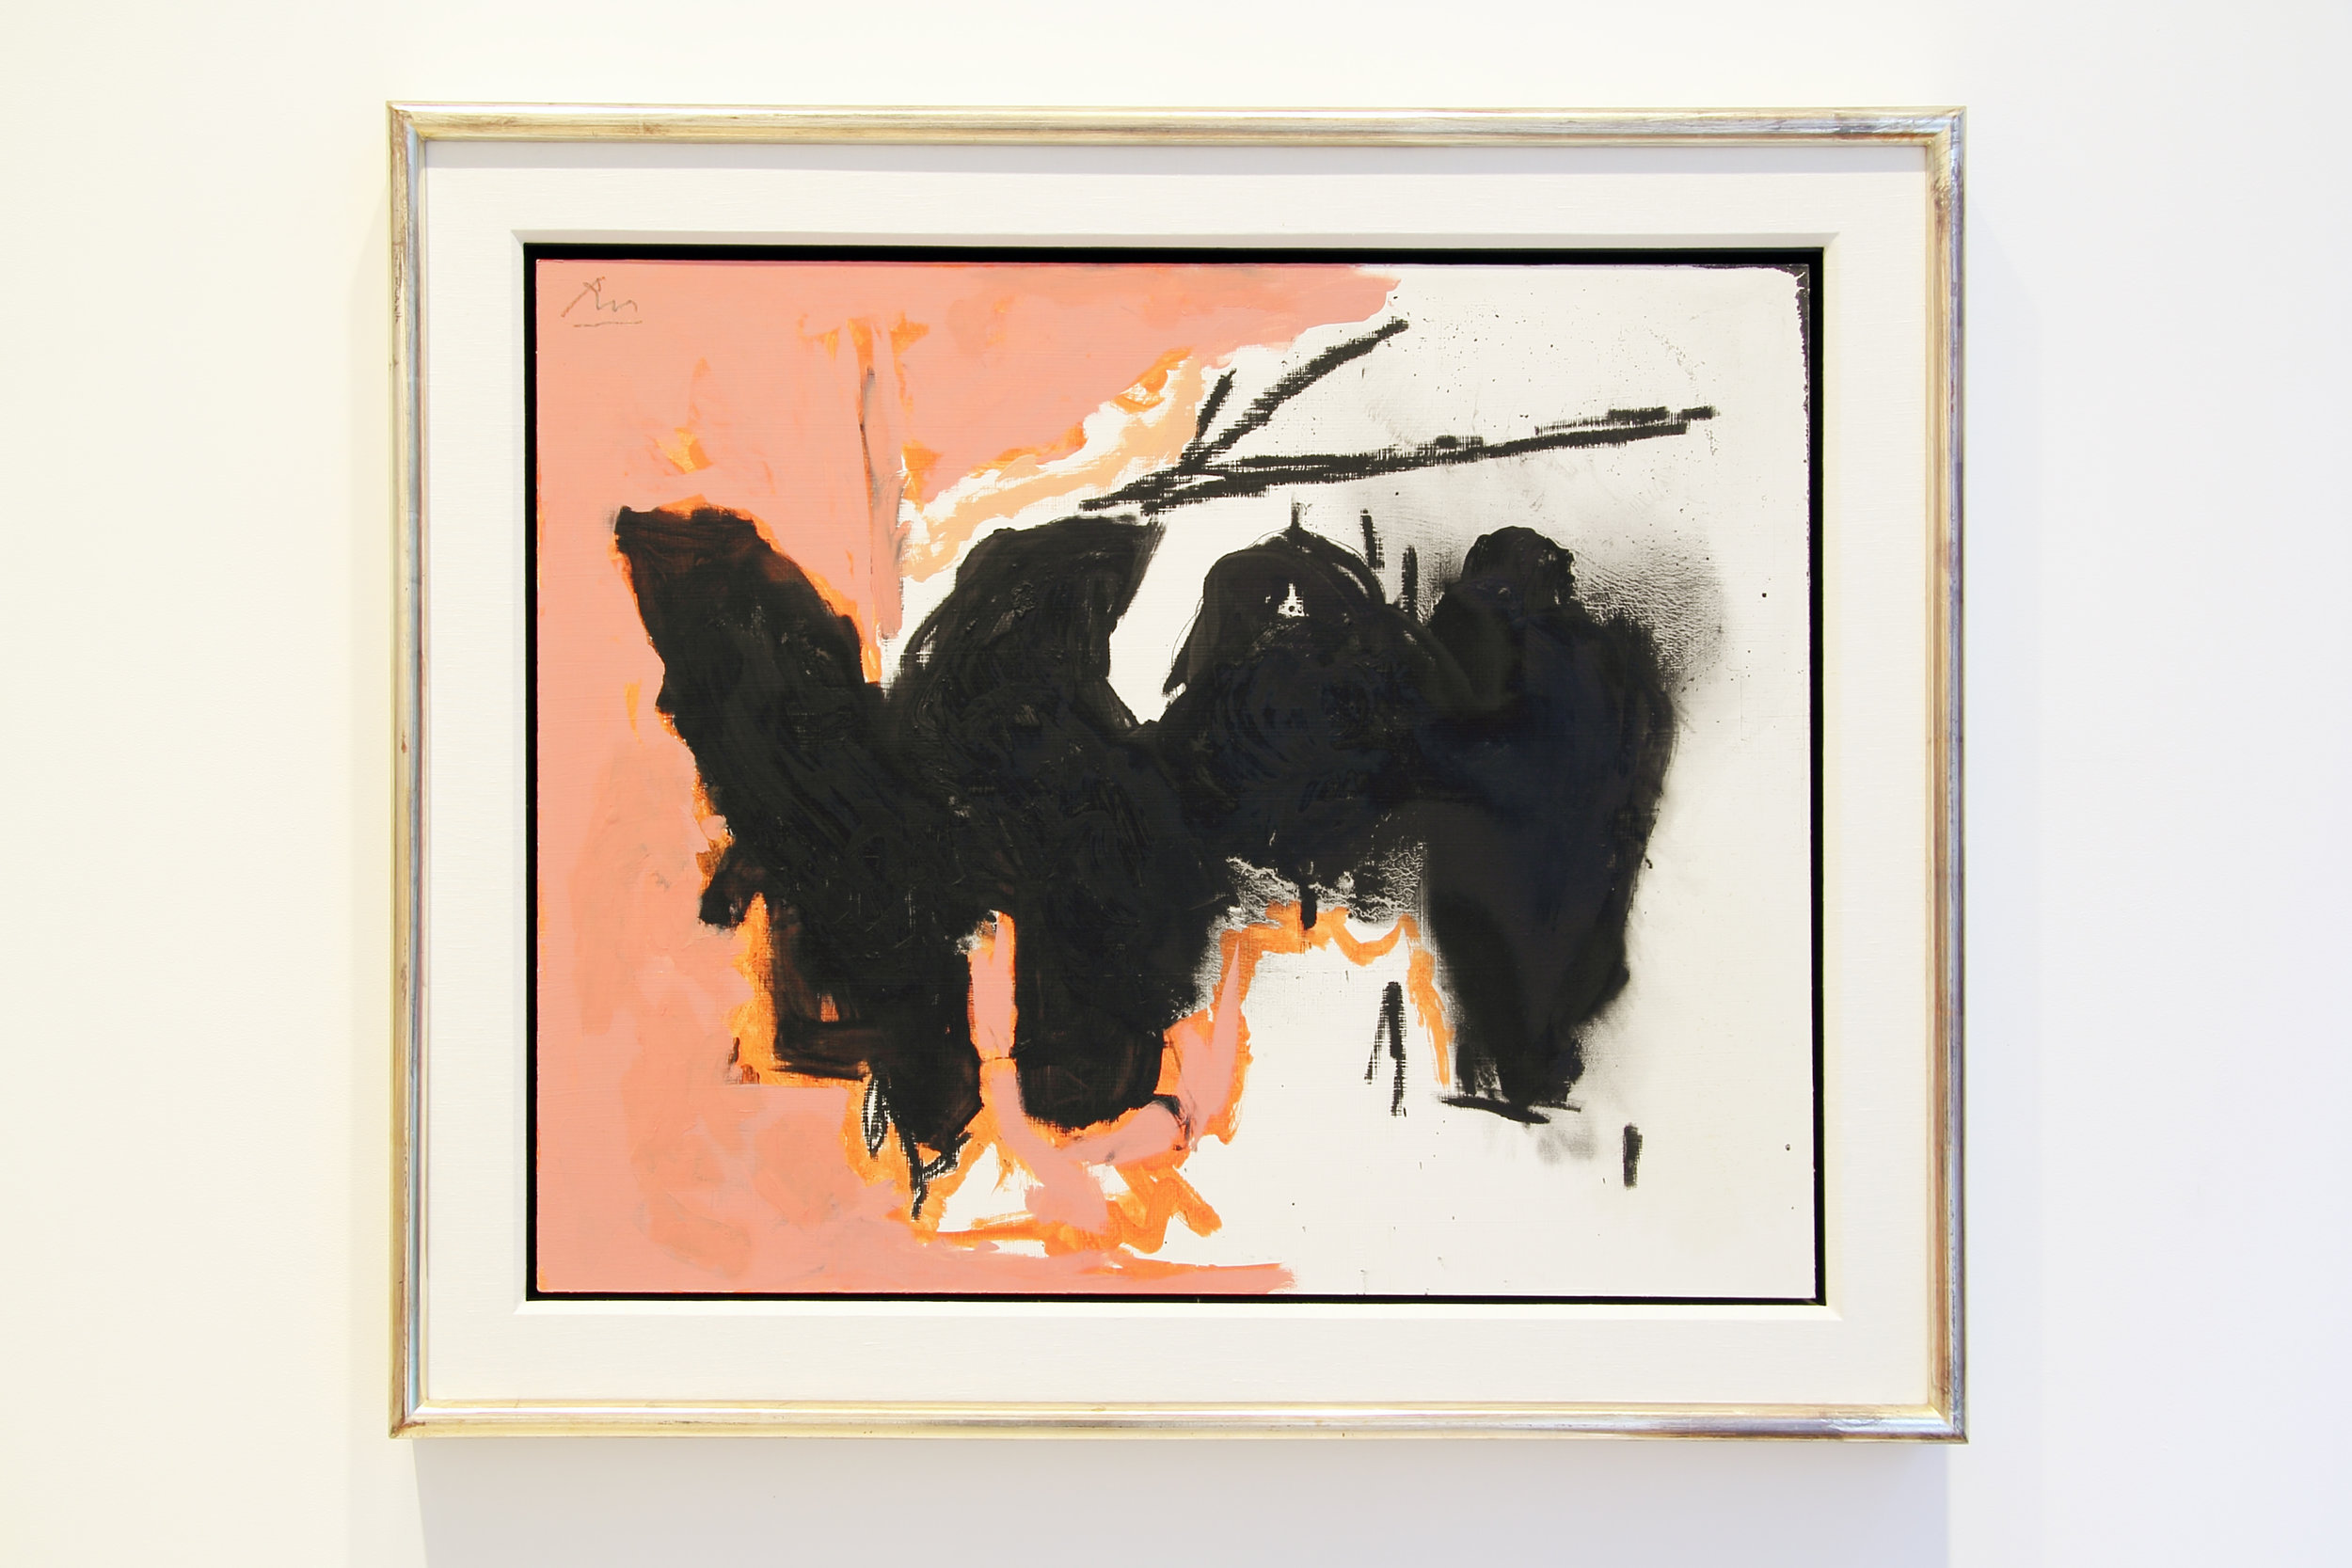 Motherwell Abstract Expressionism 2016 install.29.jpg